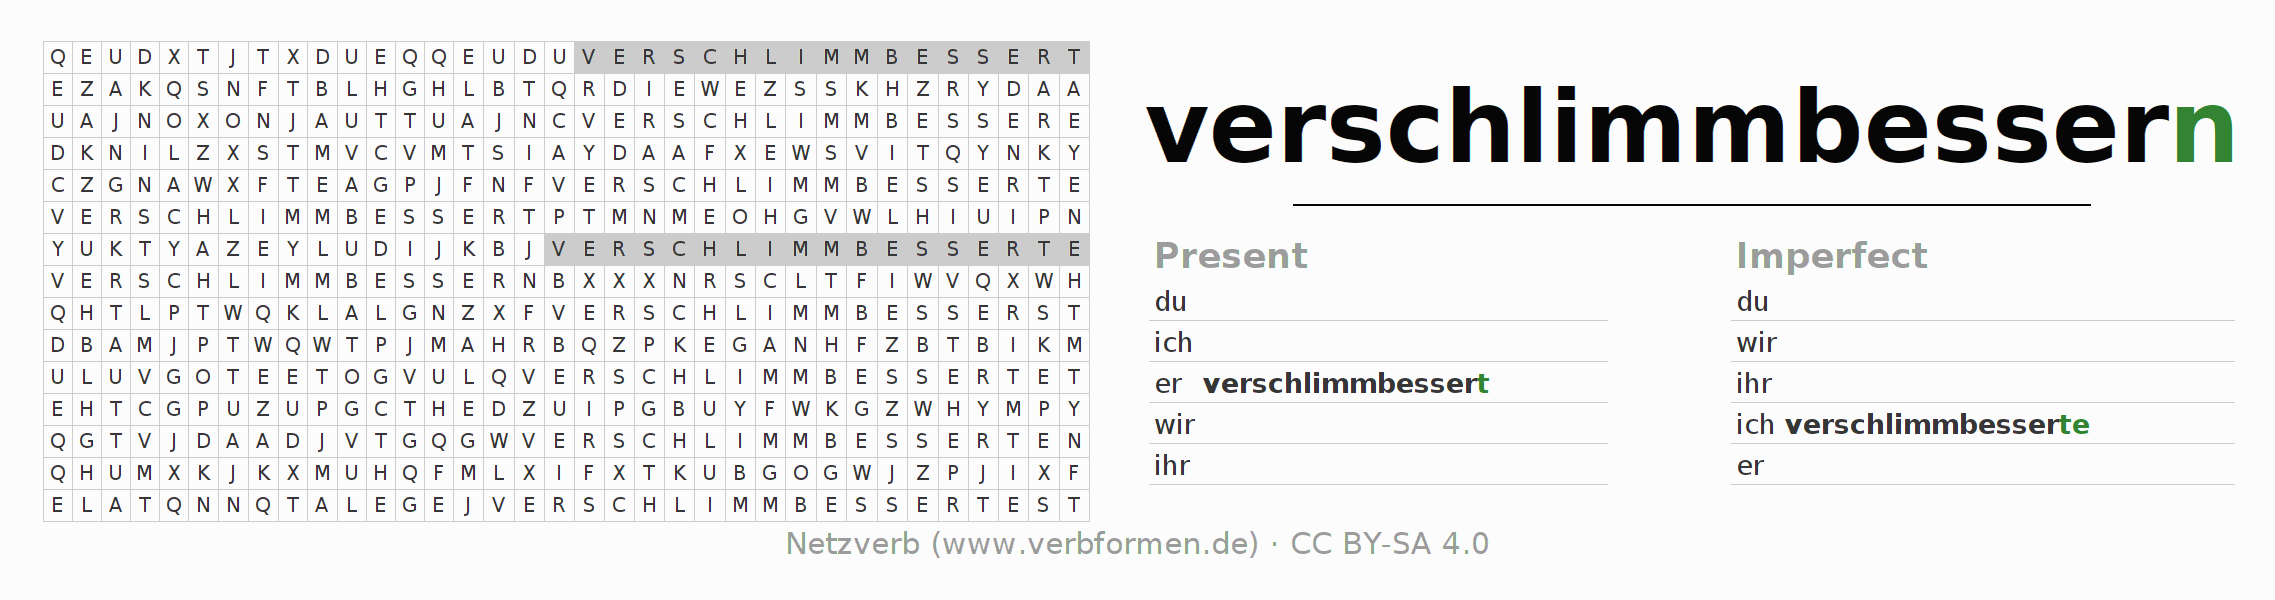 Word search puzzle for the conjugation of the verb verschlimmbessern